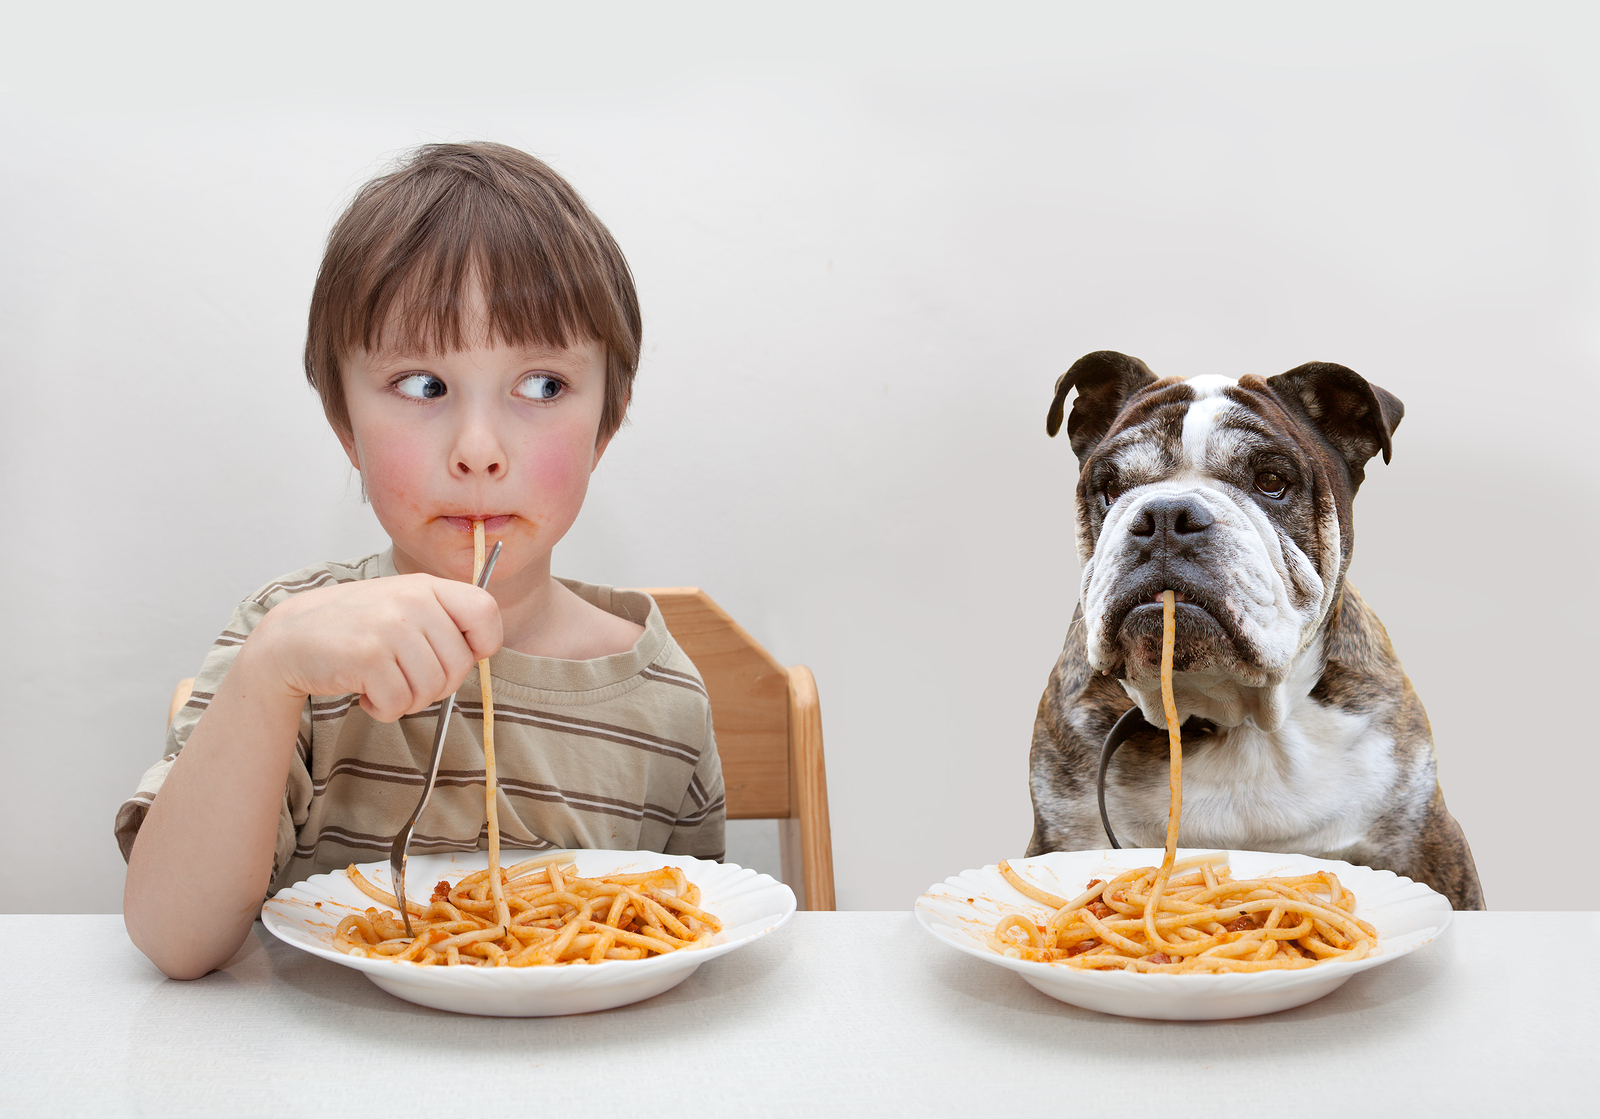 small child and his dog eat spaghetti